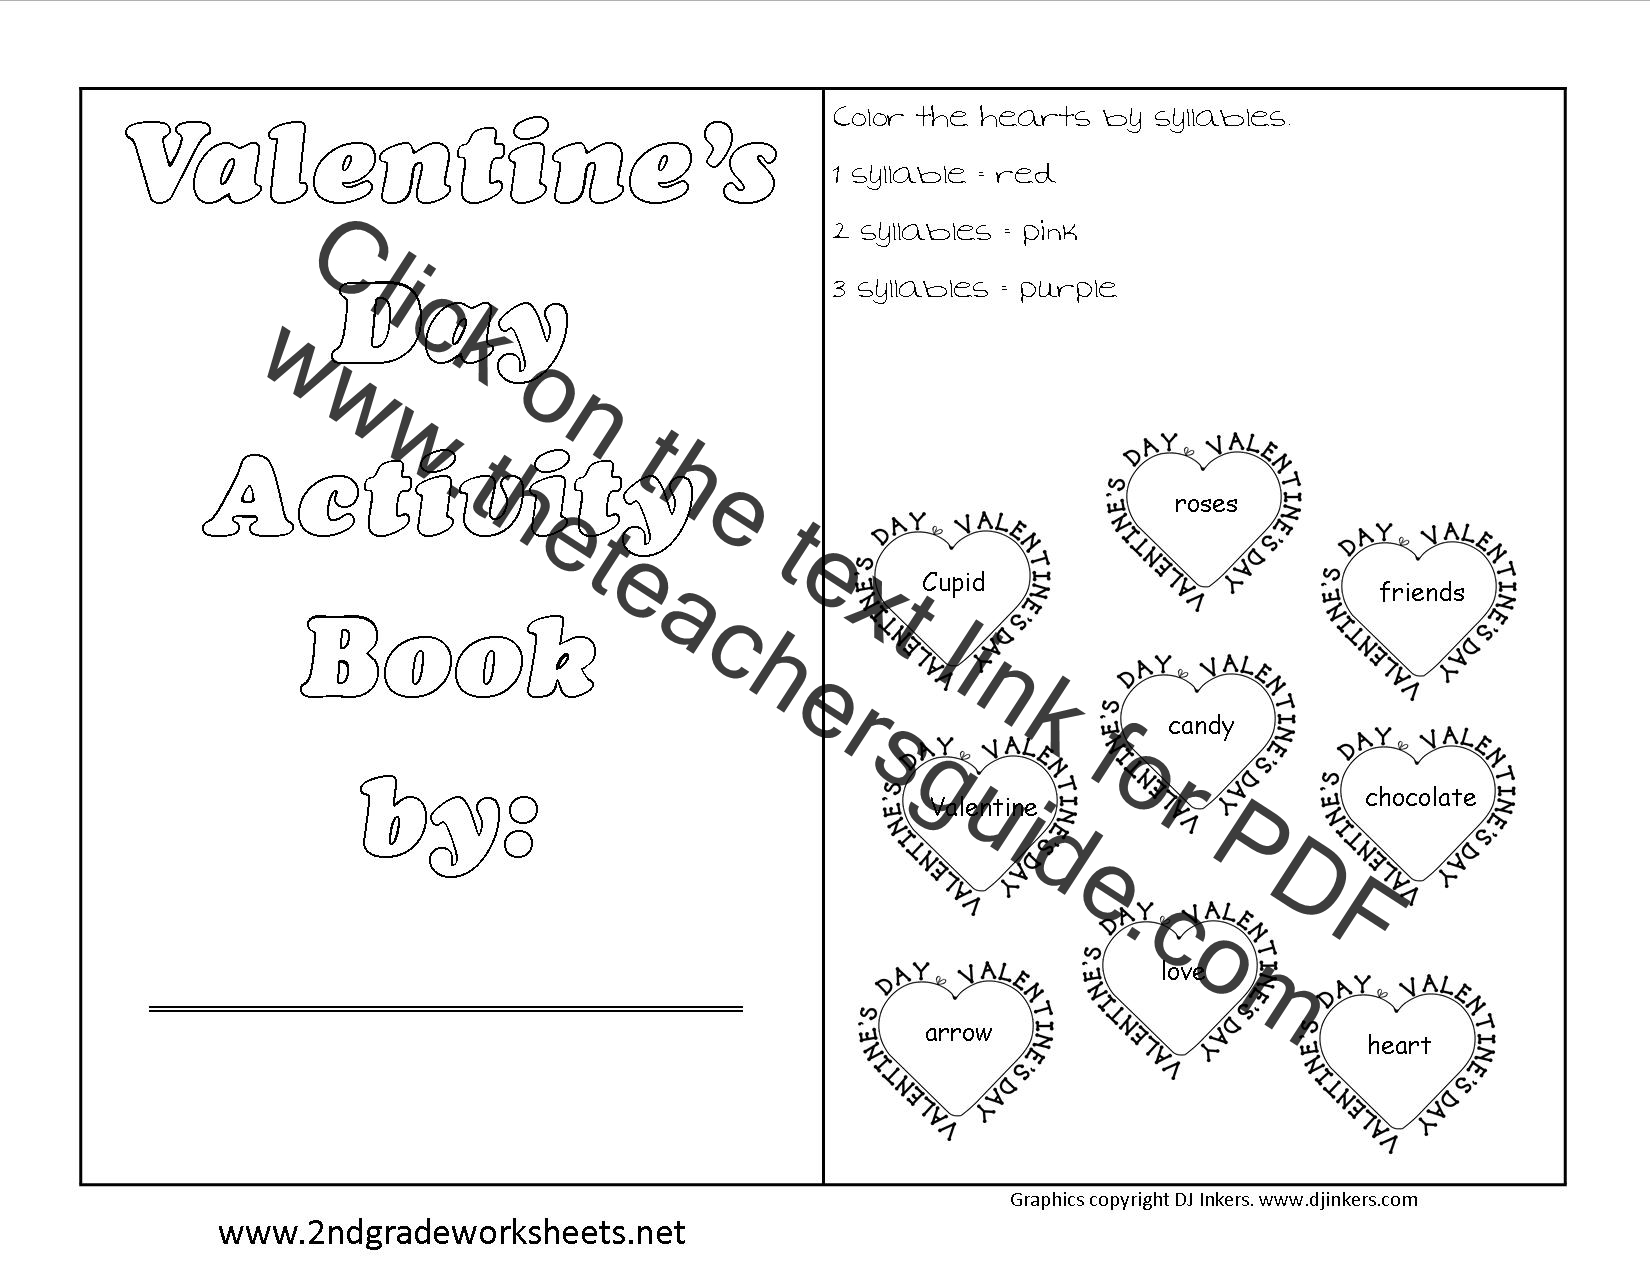 Theme Verb Synonym Theme Verb Synonym Theme Day Synonym Valentine S Day